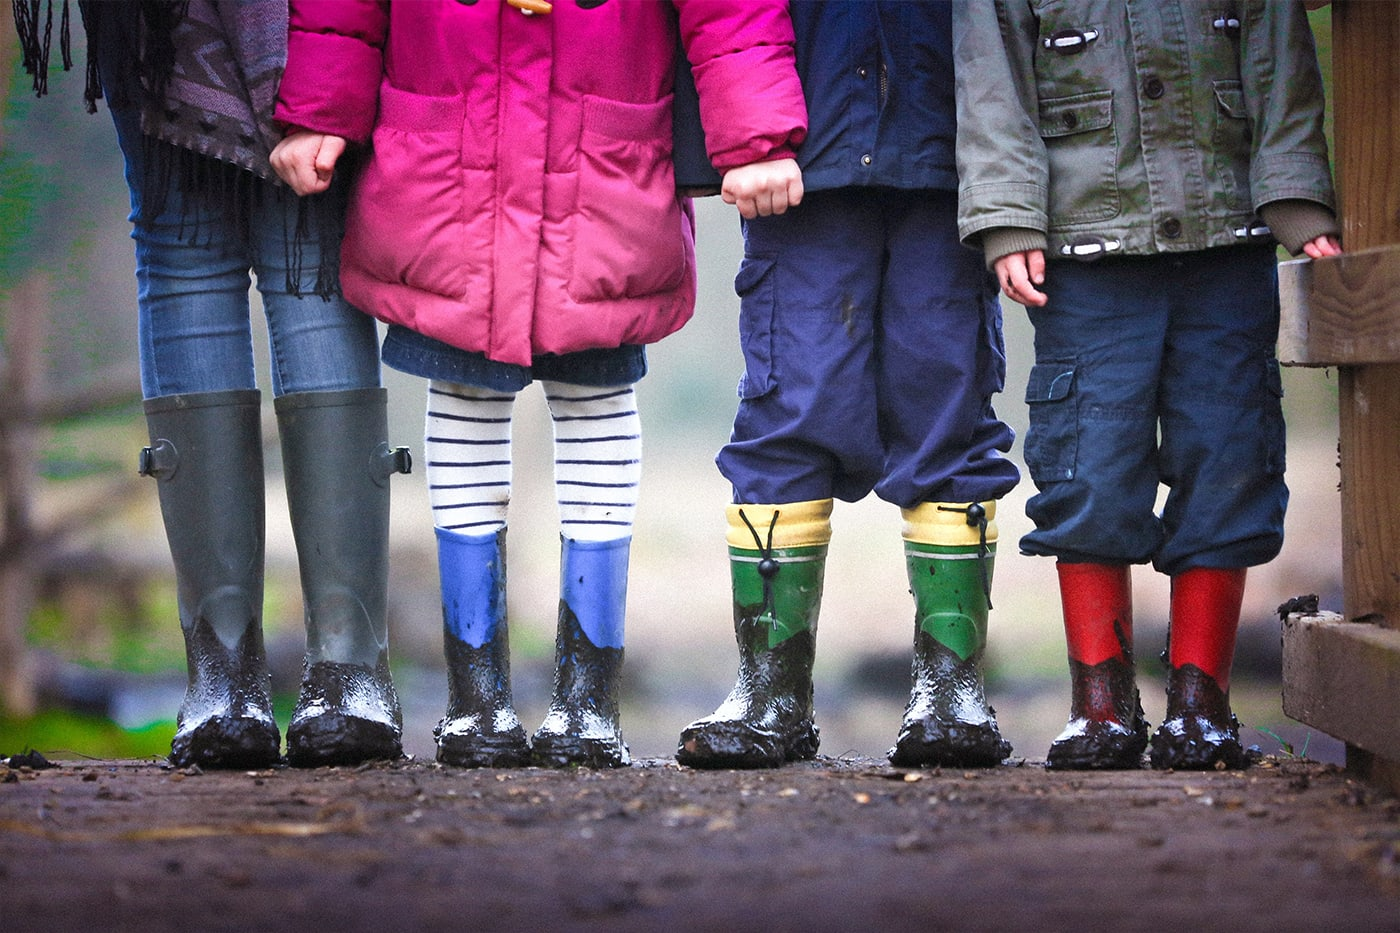 4 young children with muddy boots standing in a row